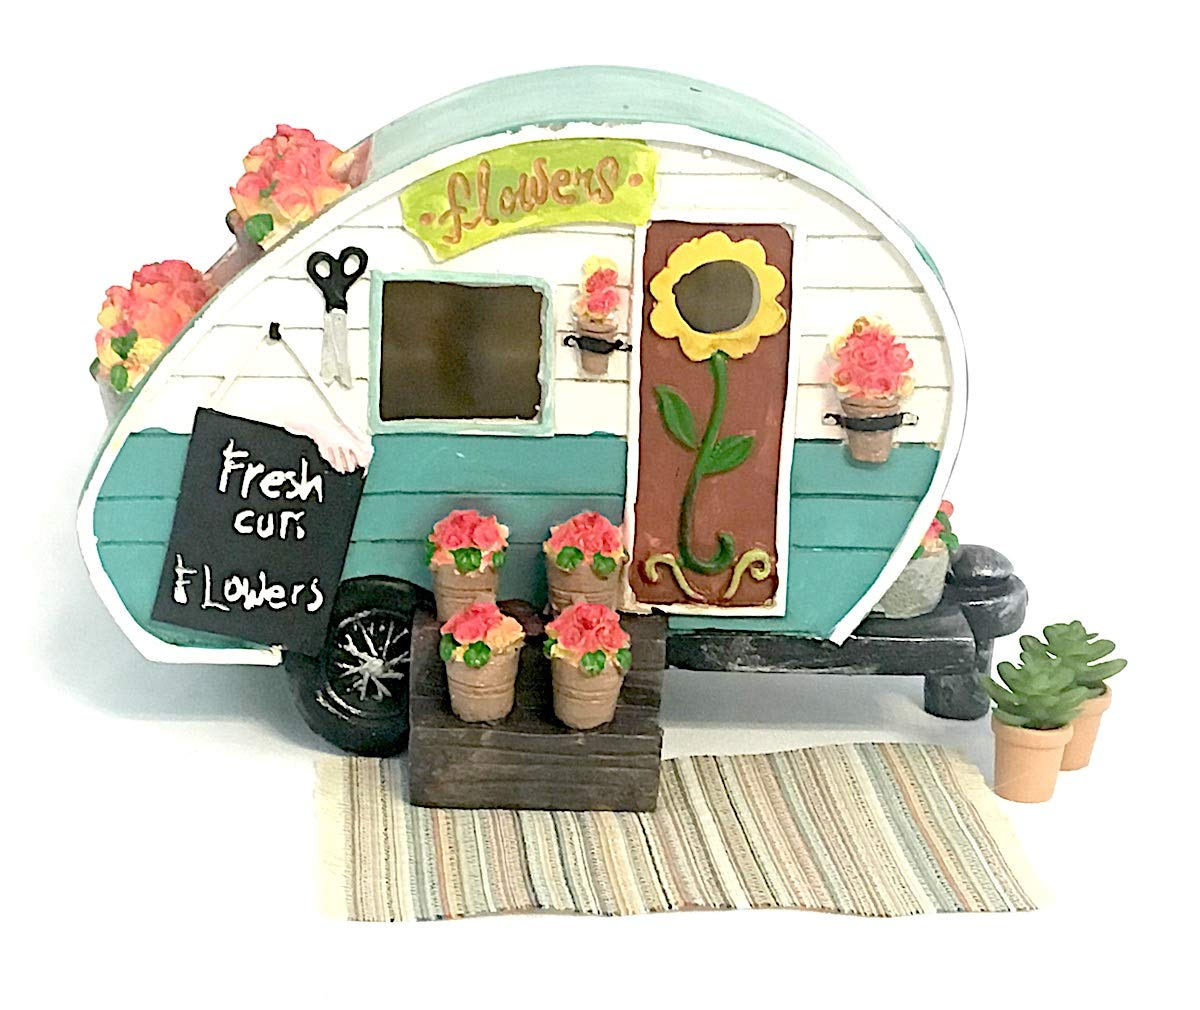 Snickerdoodle Smalls Teal LED Flower Camp Trailer for Miniature Fairy Gardens, Terrariums, and Home Decor; Set Includes Trailer, Rug, 2 Pots with Faux Succulents